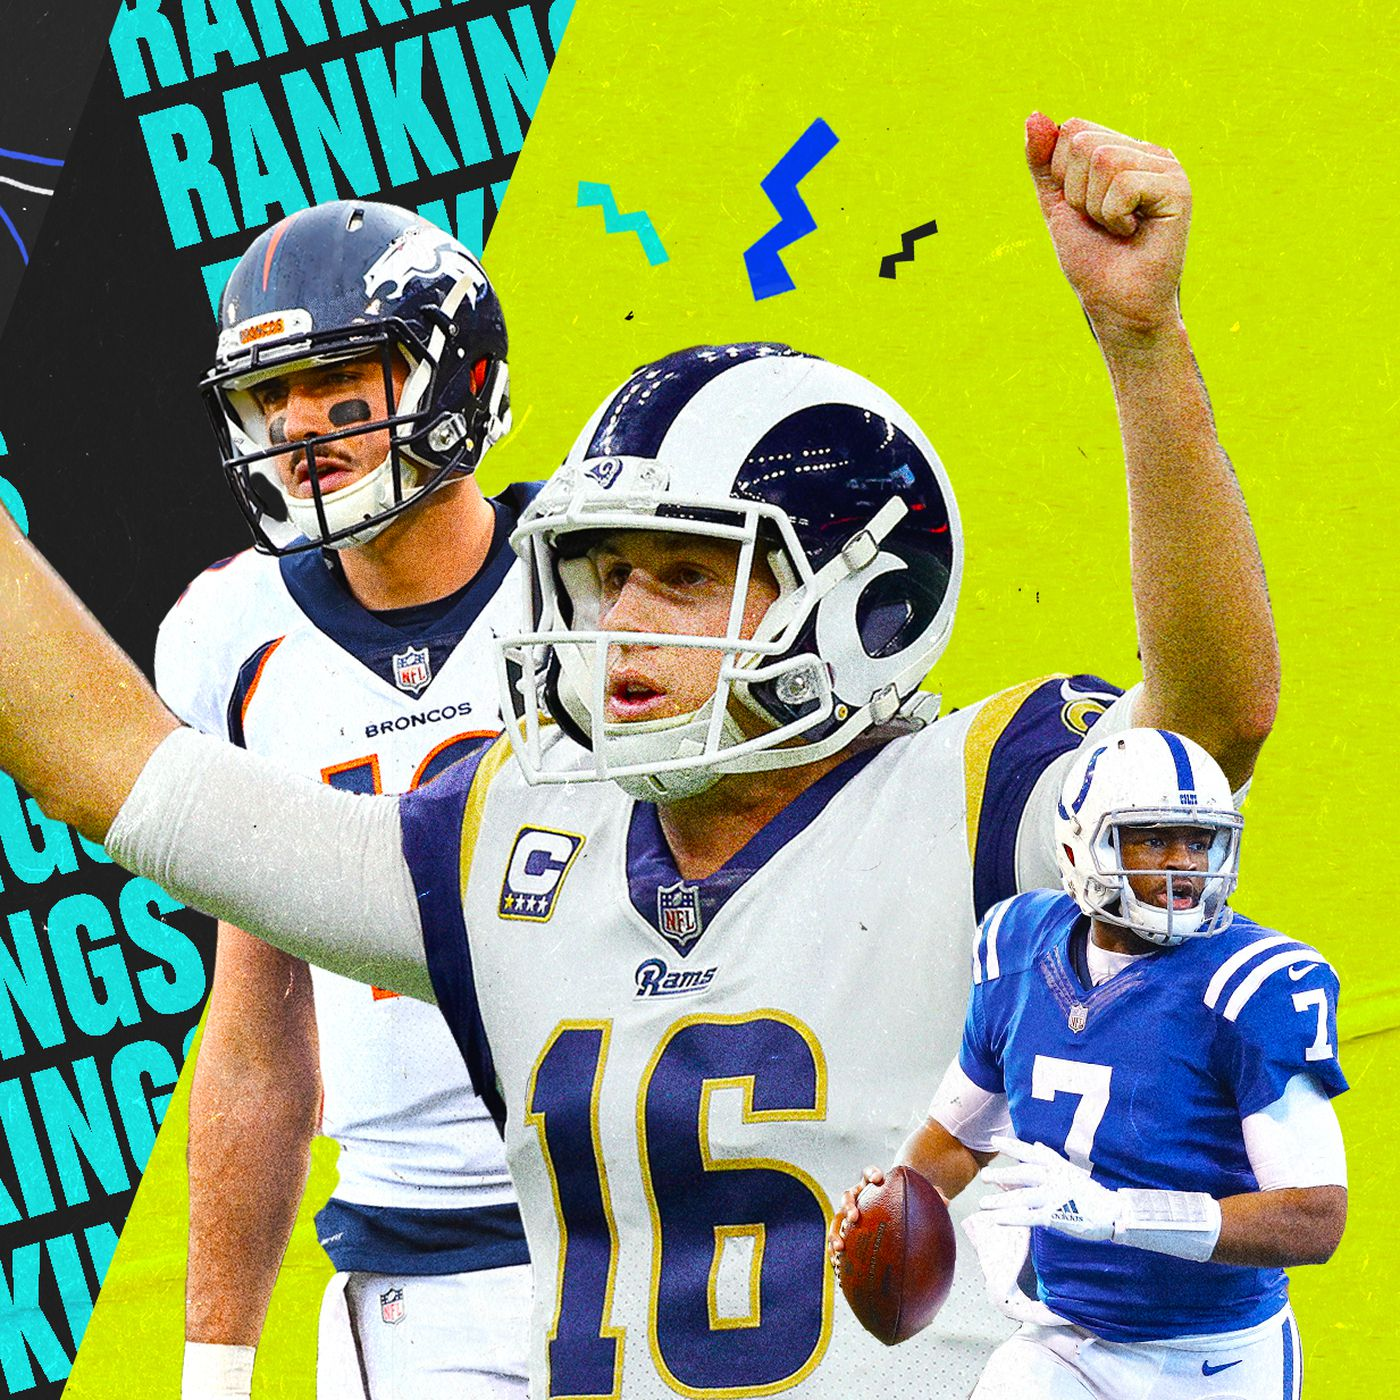 All 15 quarterbacks picked in the 2016 NFL Draft, as ranked today ...